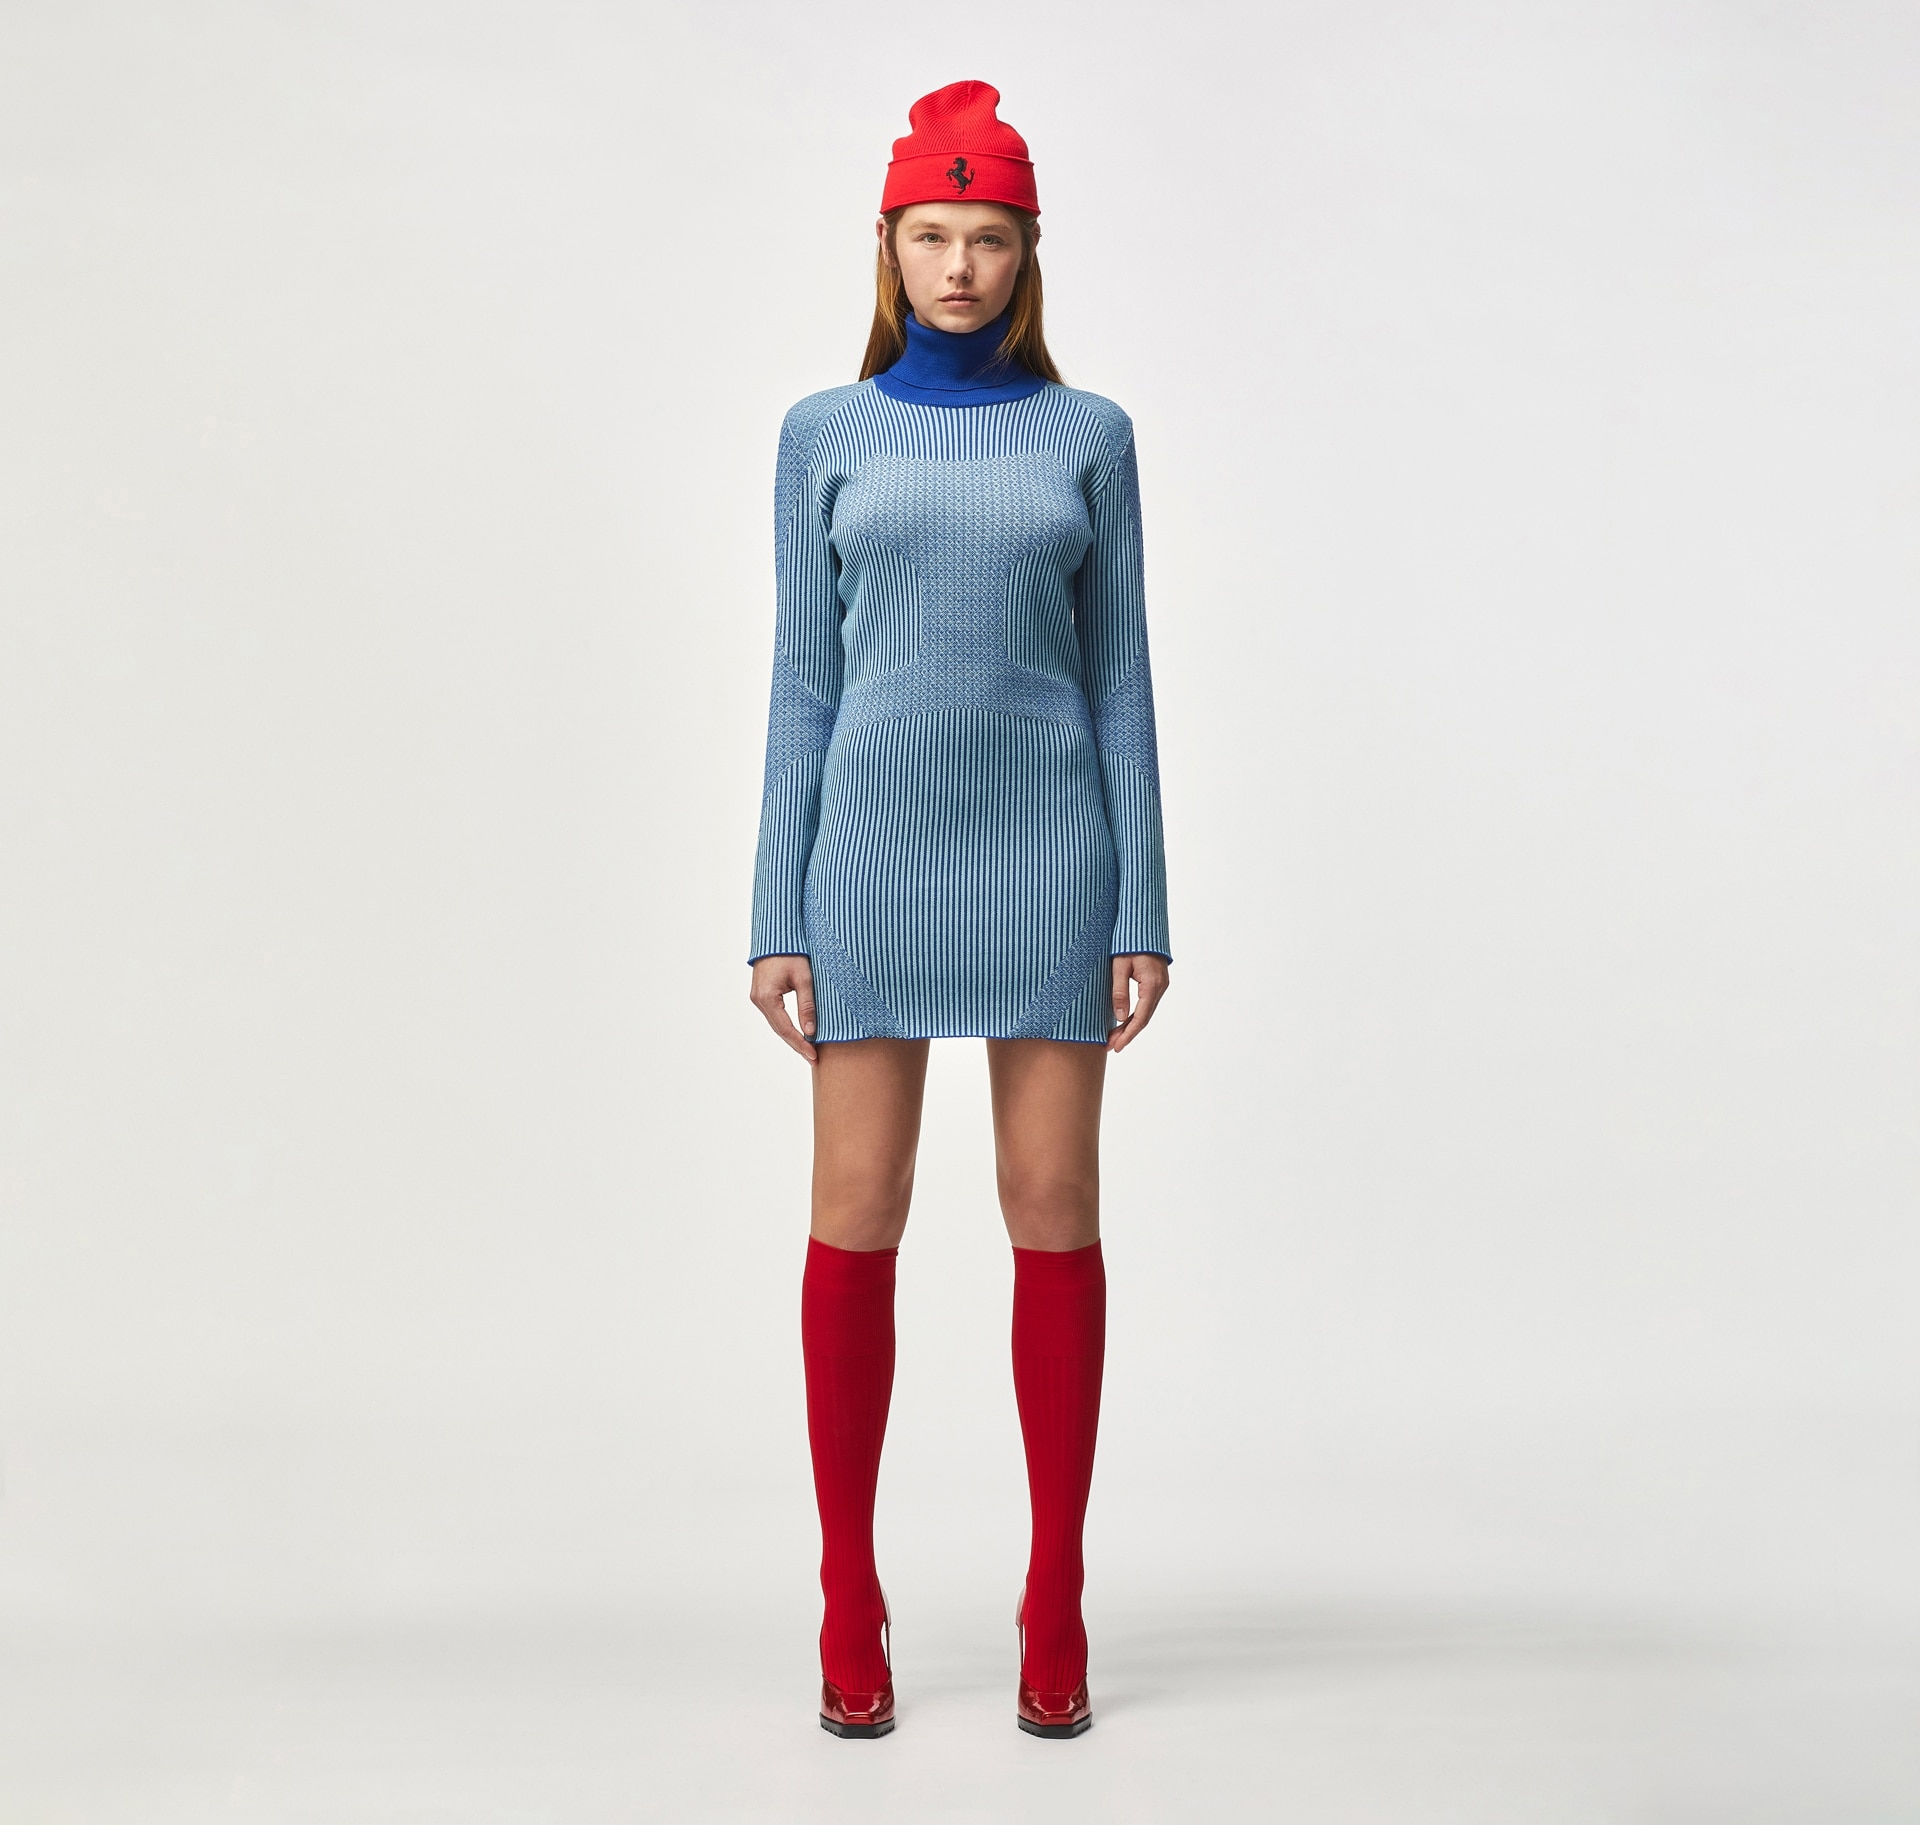 Model wearing light blue dress with blue collar, red cap and red boots